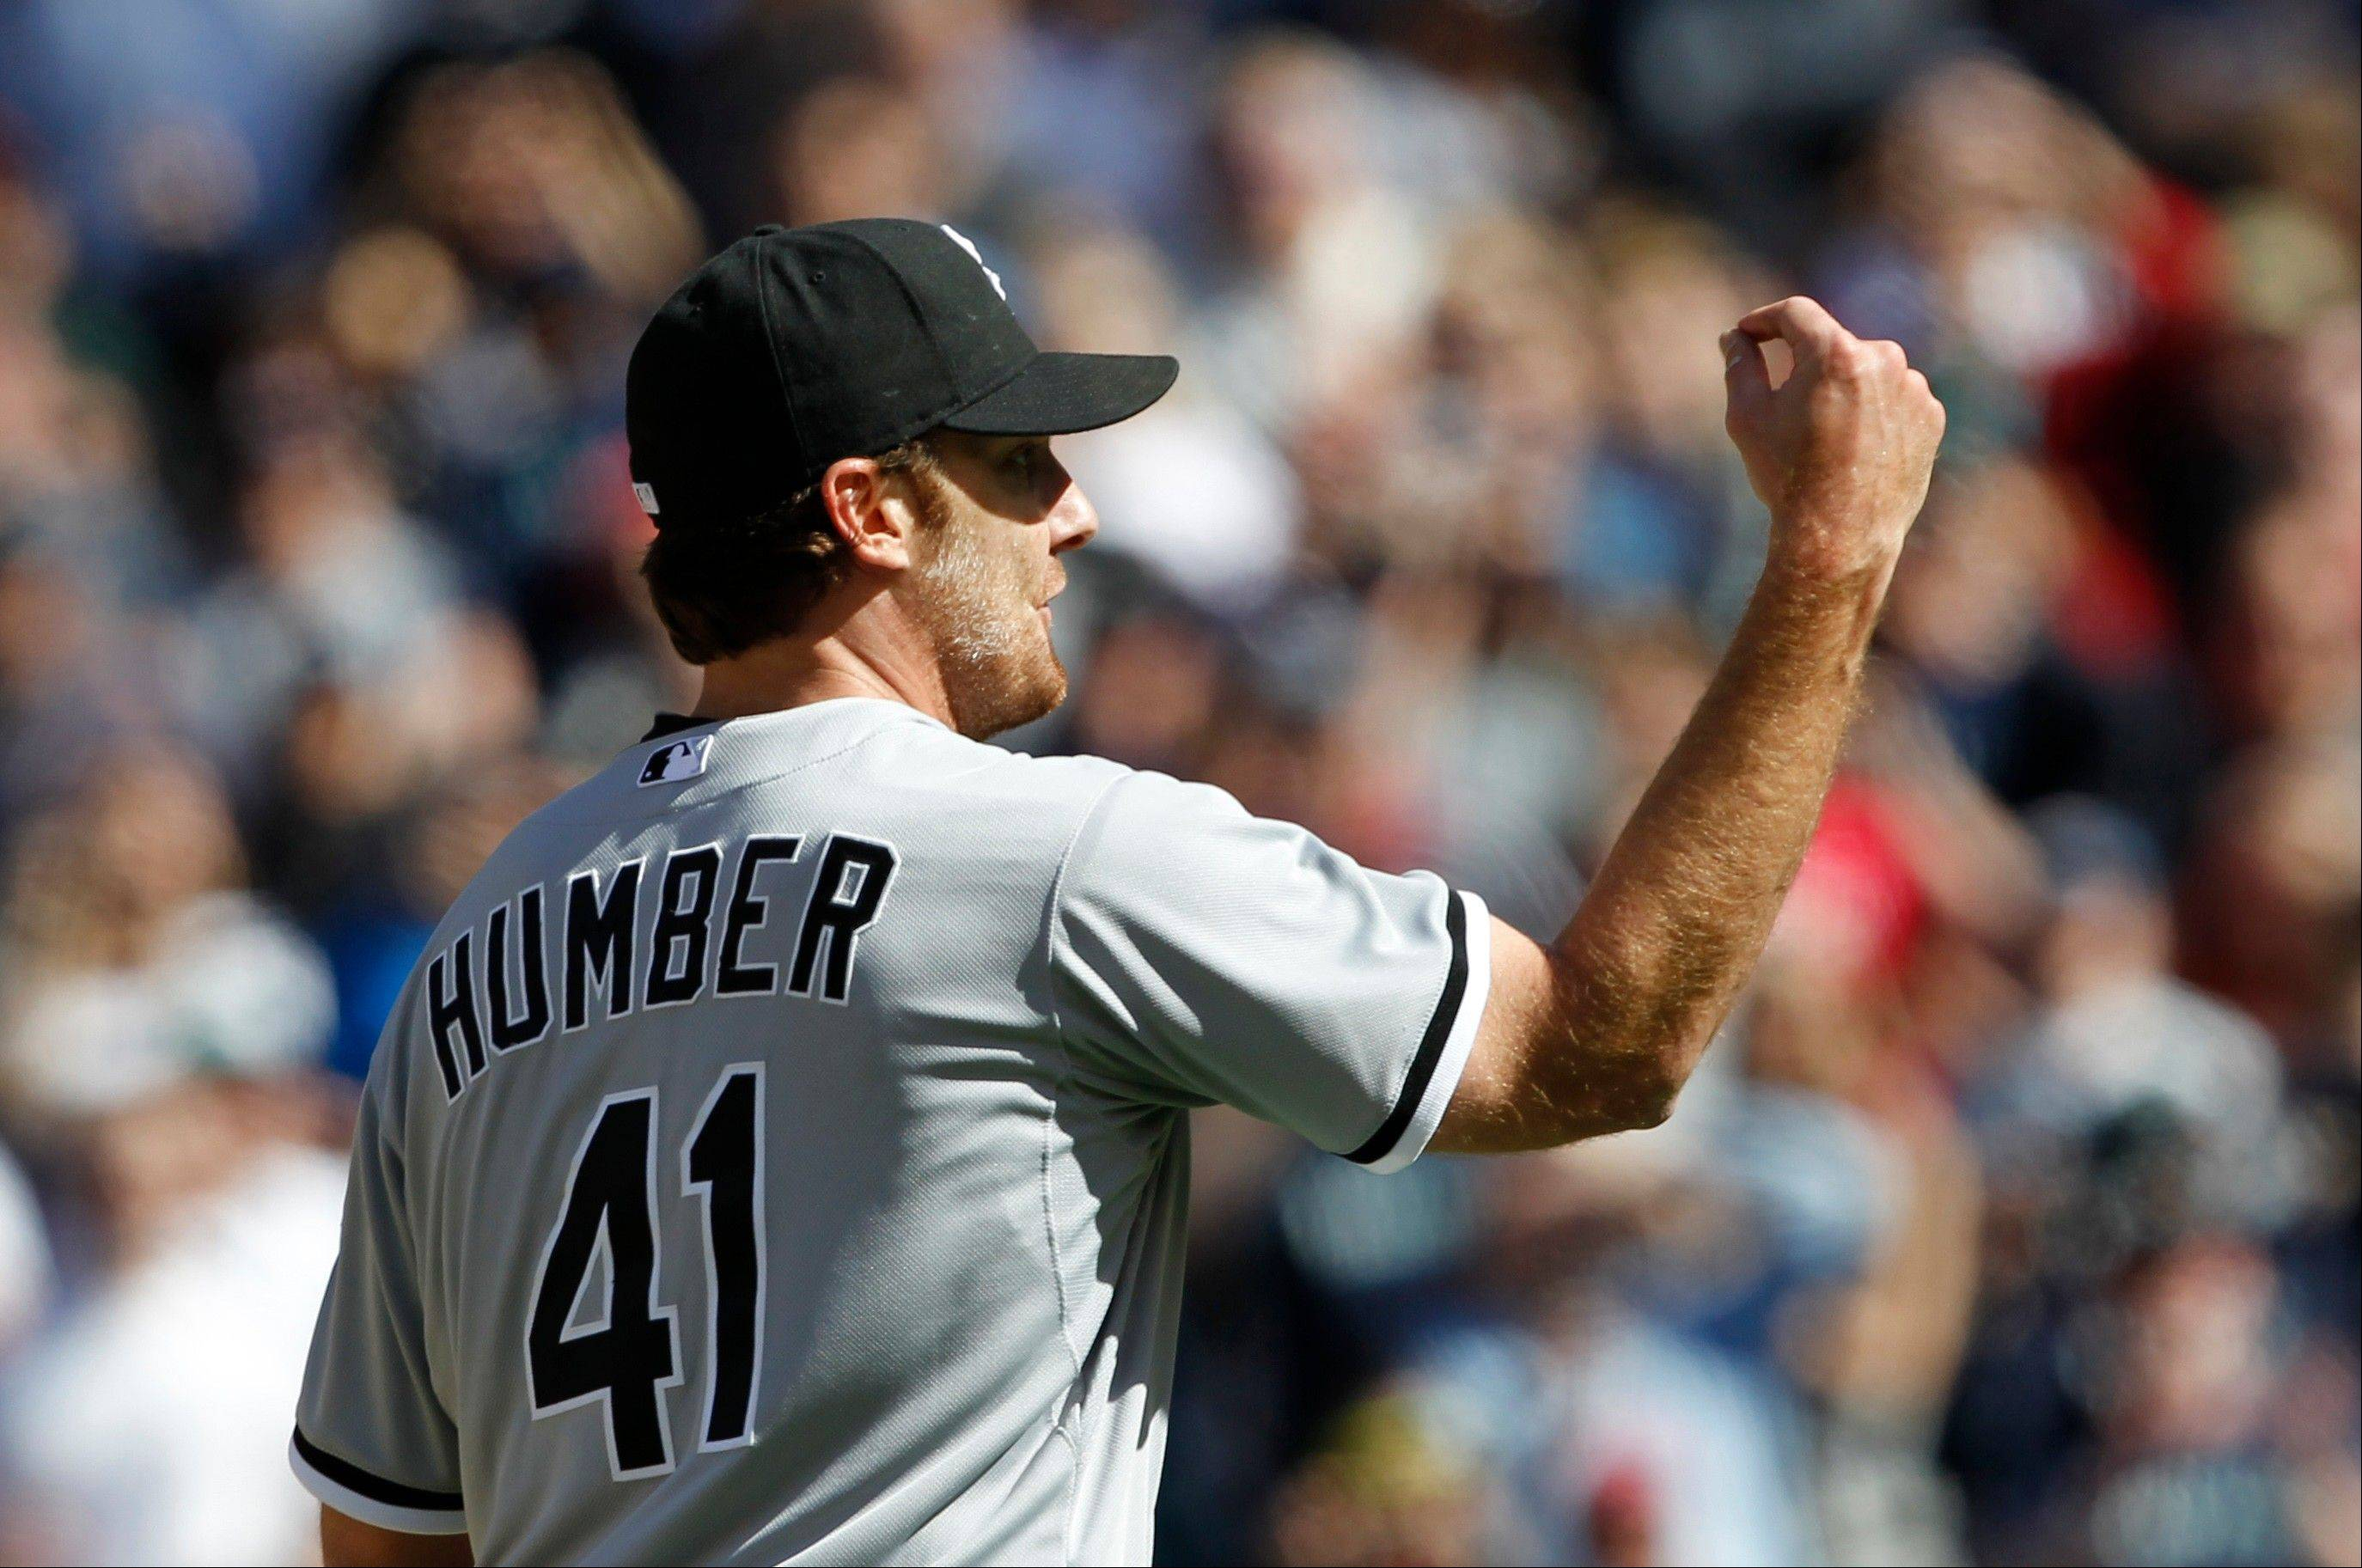 White Sox starting pitcher Phil Humber signals to the plate for a strike after his final pitch in his perfect game Saturday against the Seattle Mariners in Seattle. The White Sox won 4-0.